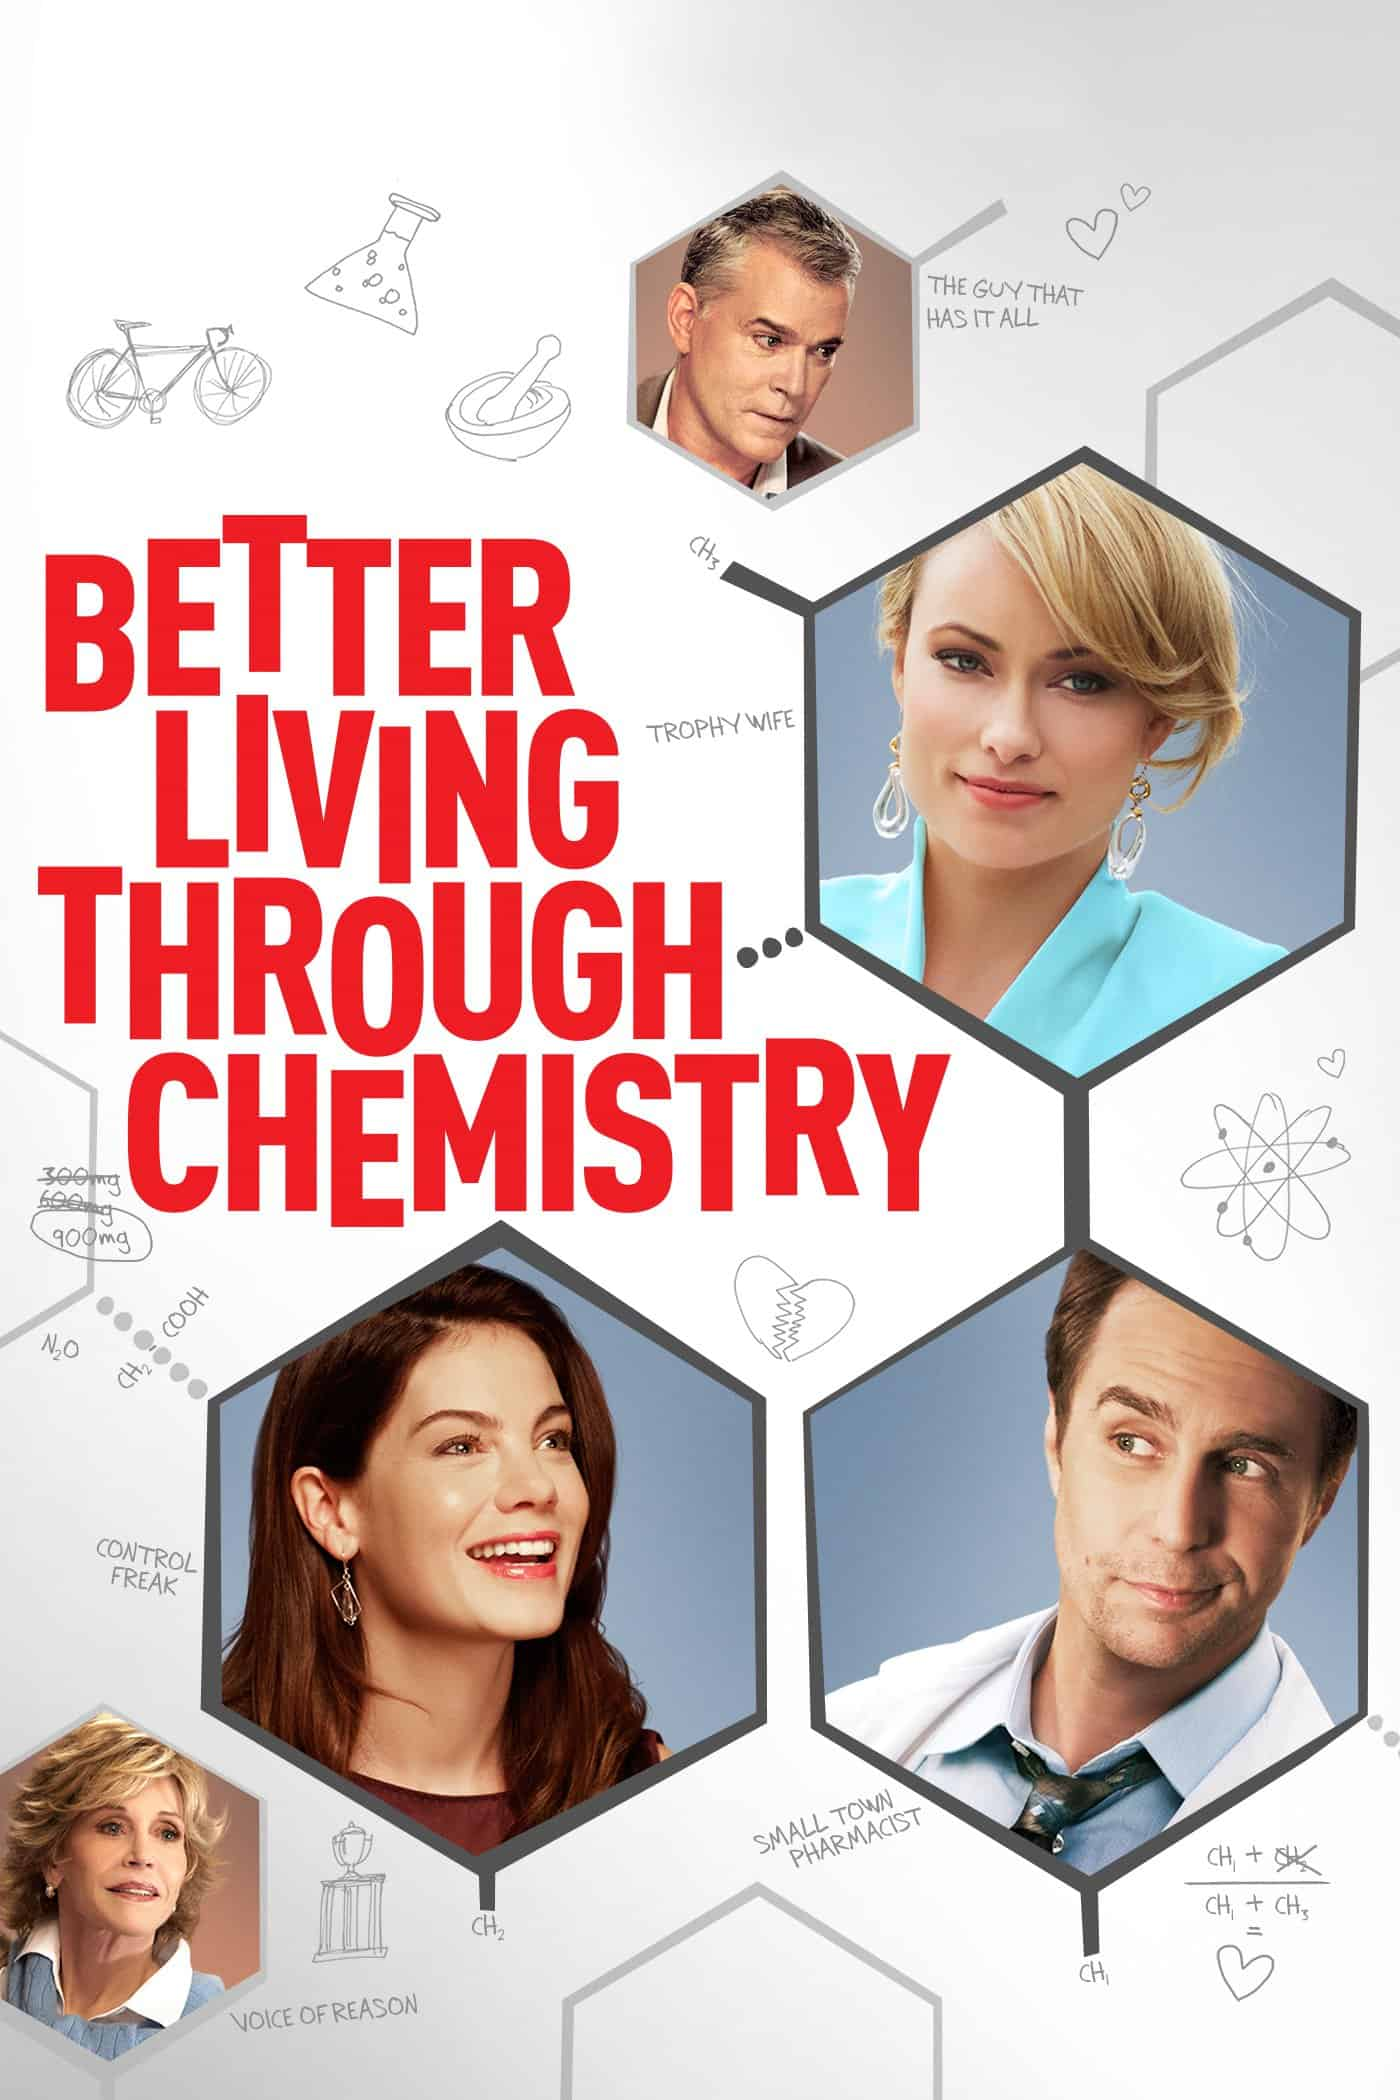 Better Living Through Chemistry, 2014